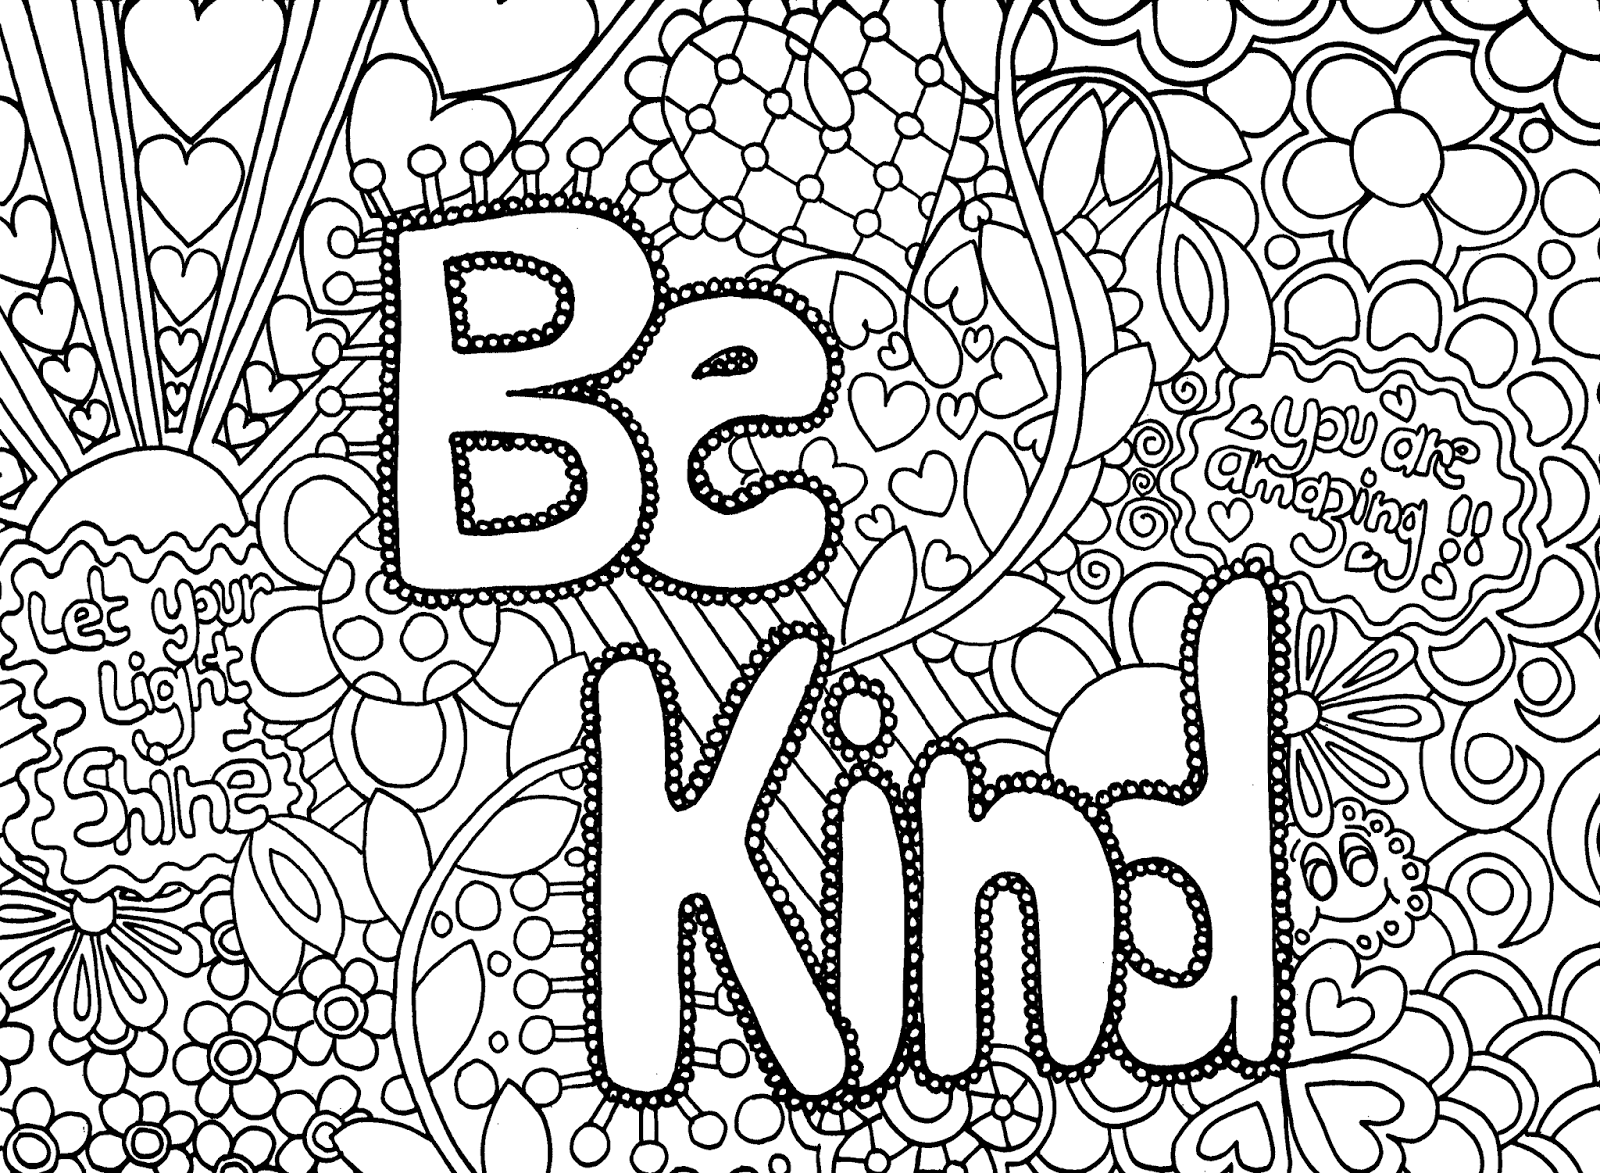 Printable coloring books adults - Free Coloring Pages For Adults To Print Image 8